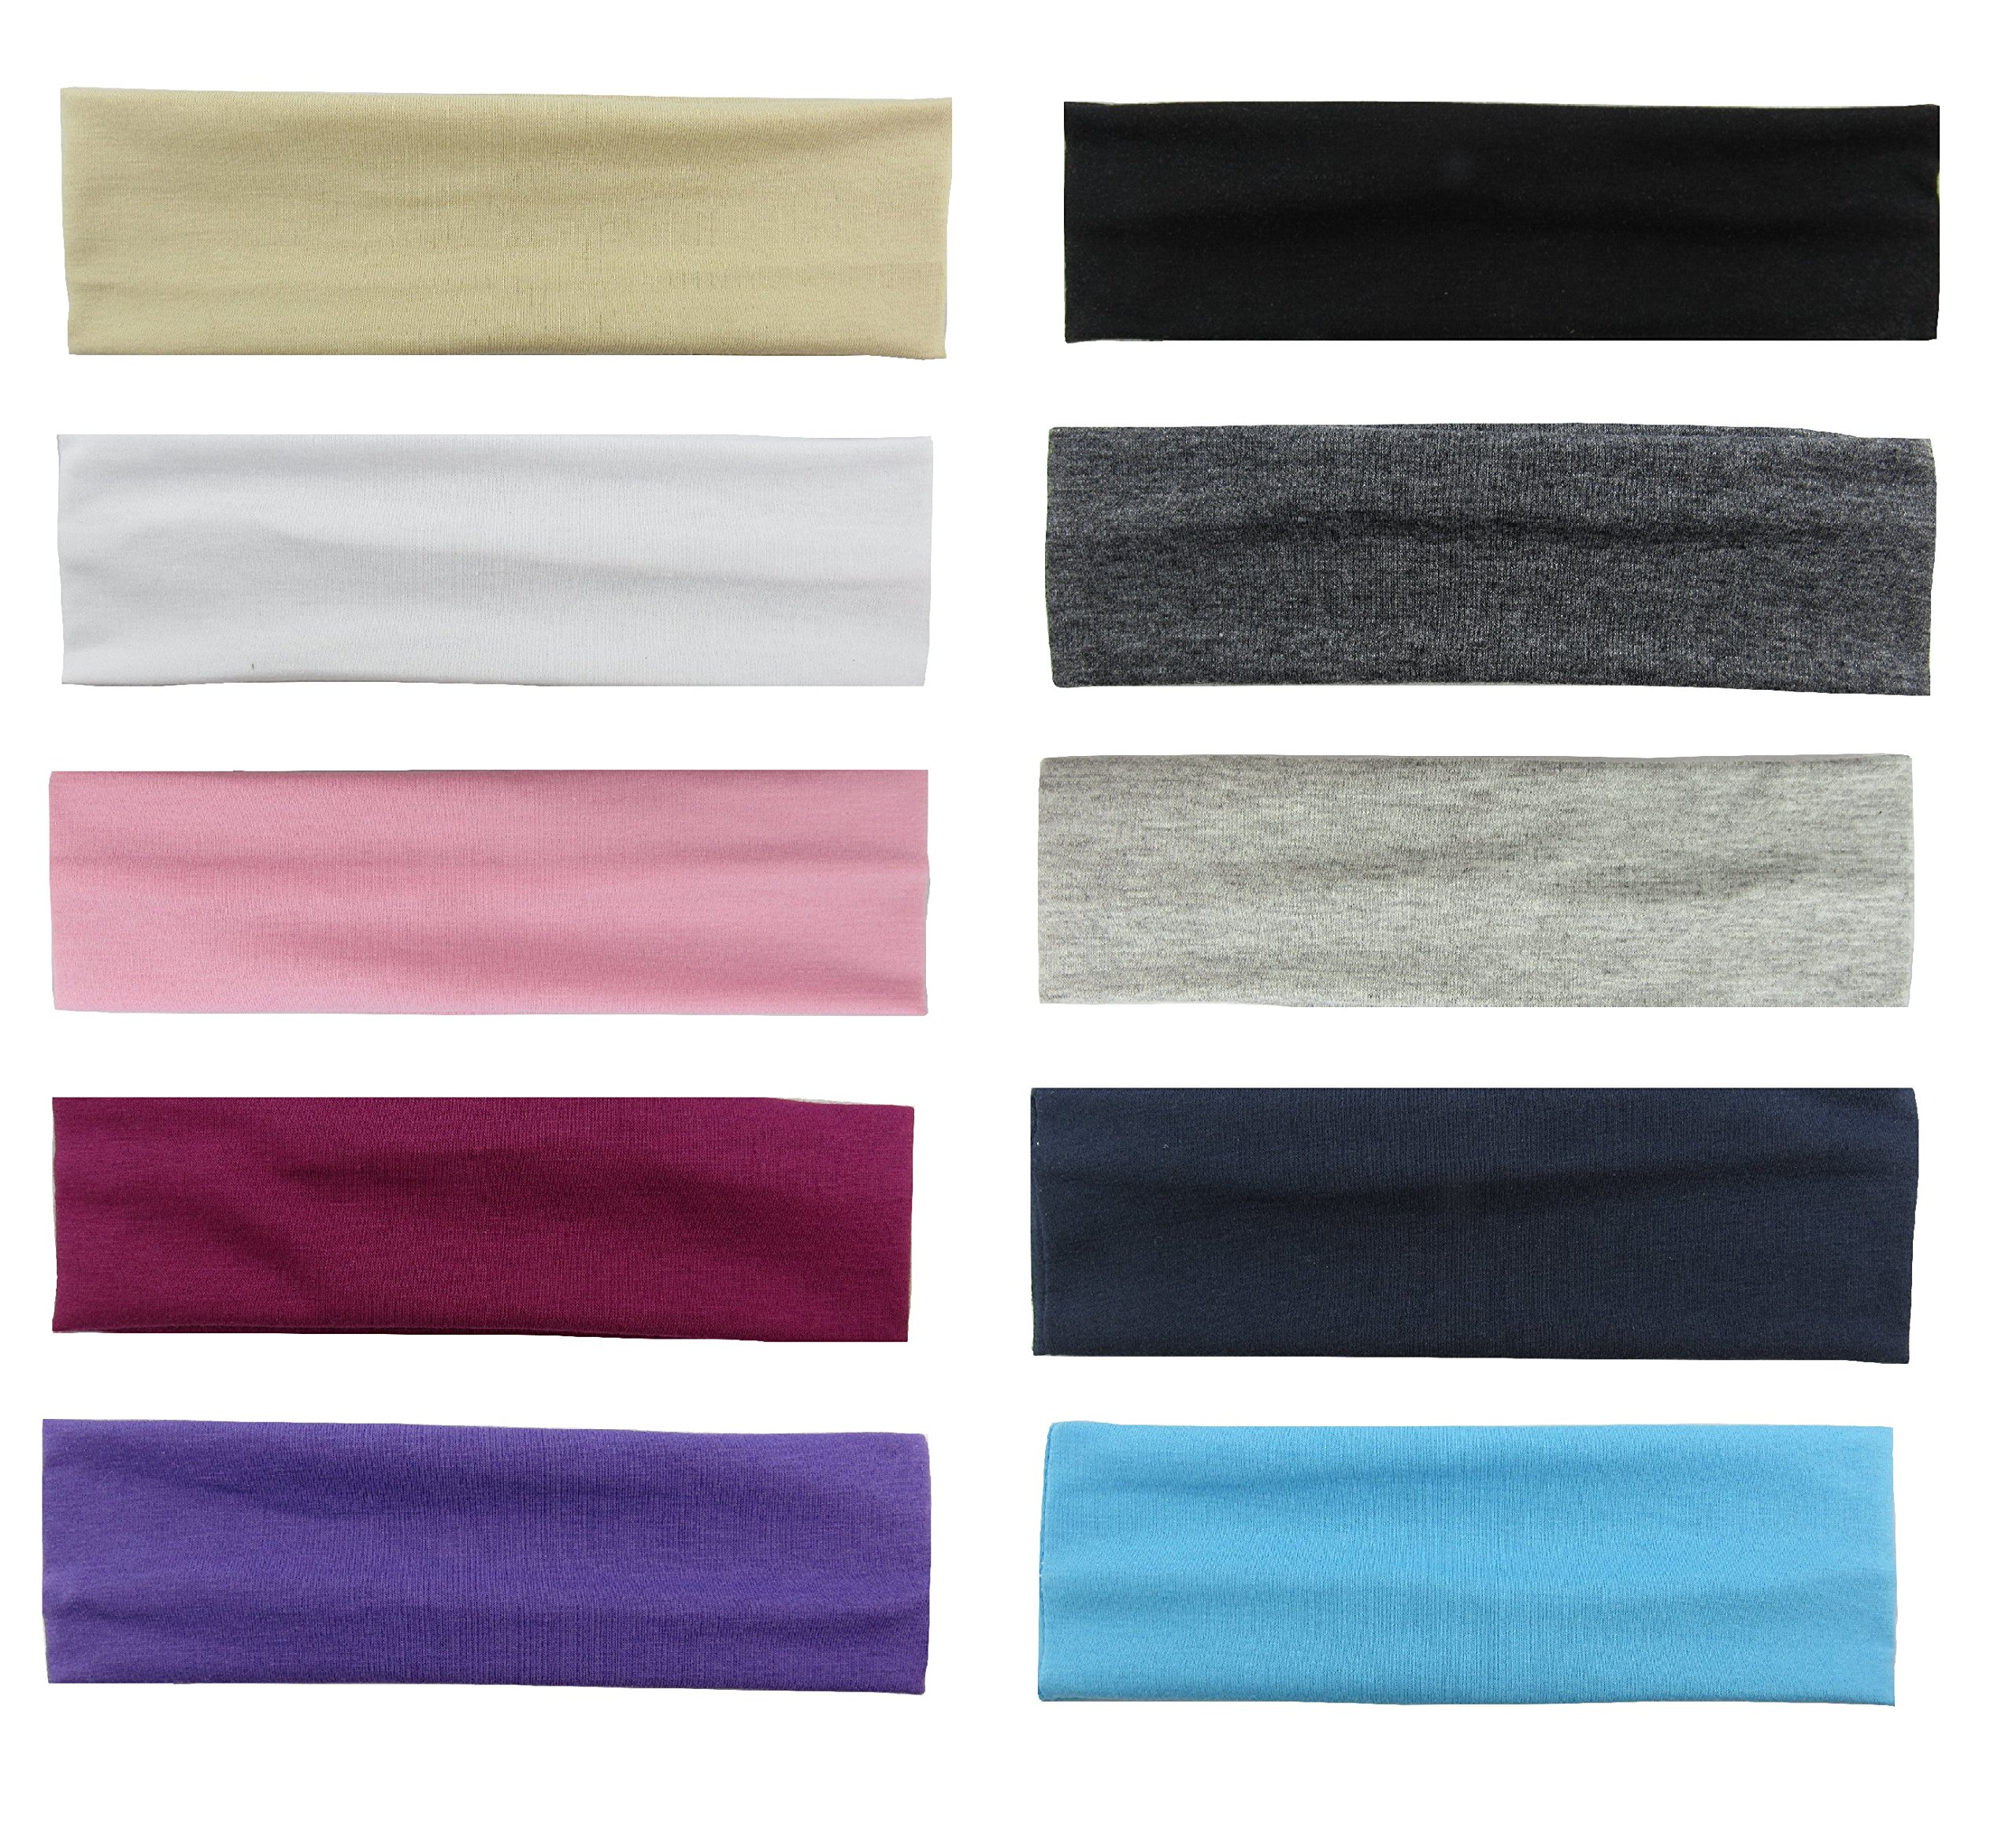 Styla Hair 10 Pack Yoga Headbands - Elastic Cotton Multi-Function Sports Head Bands Stretchy Wraps (Variety)